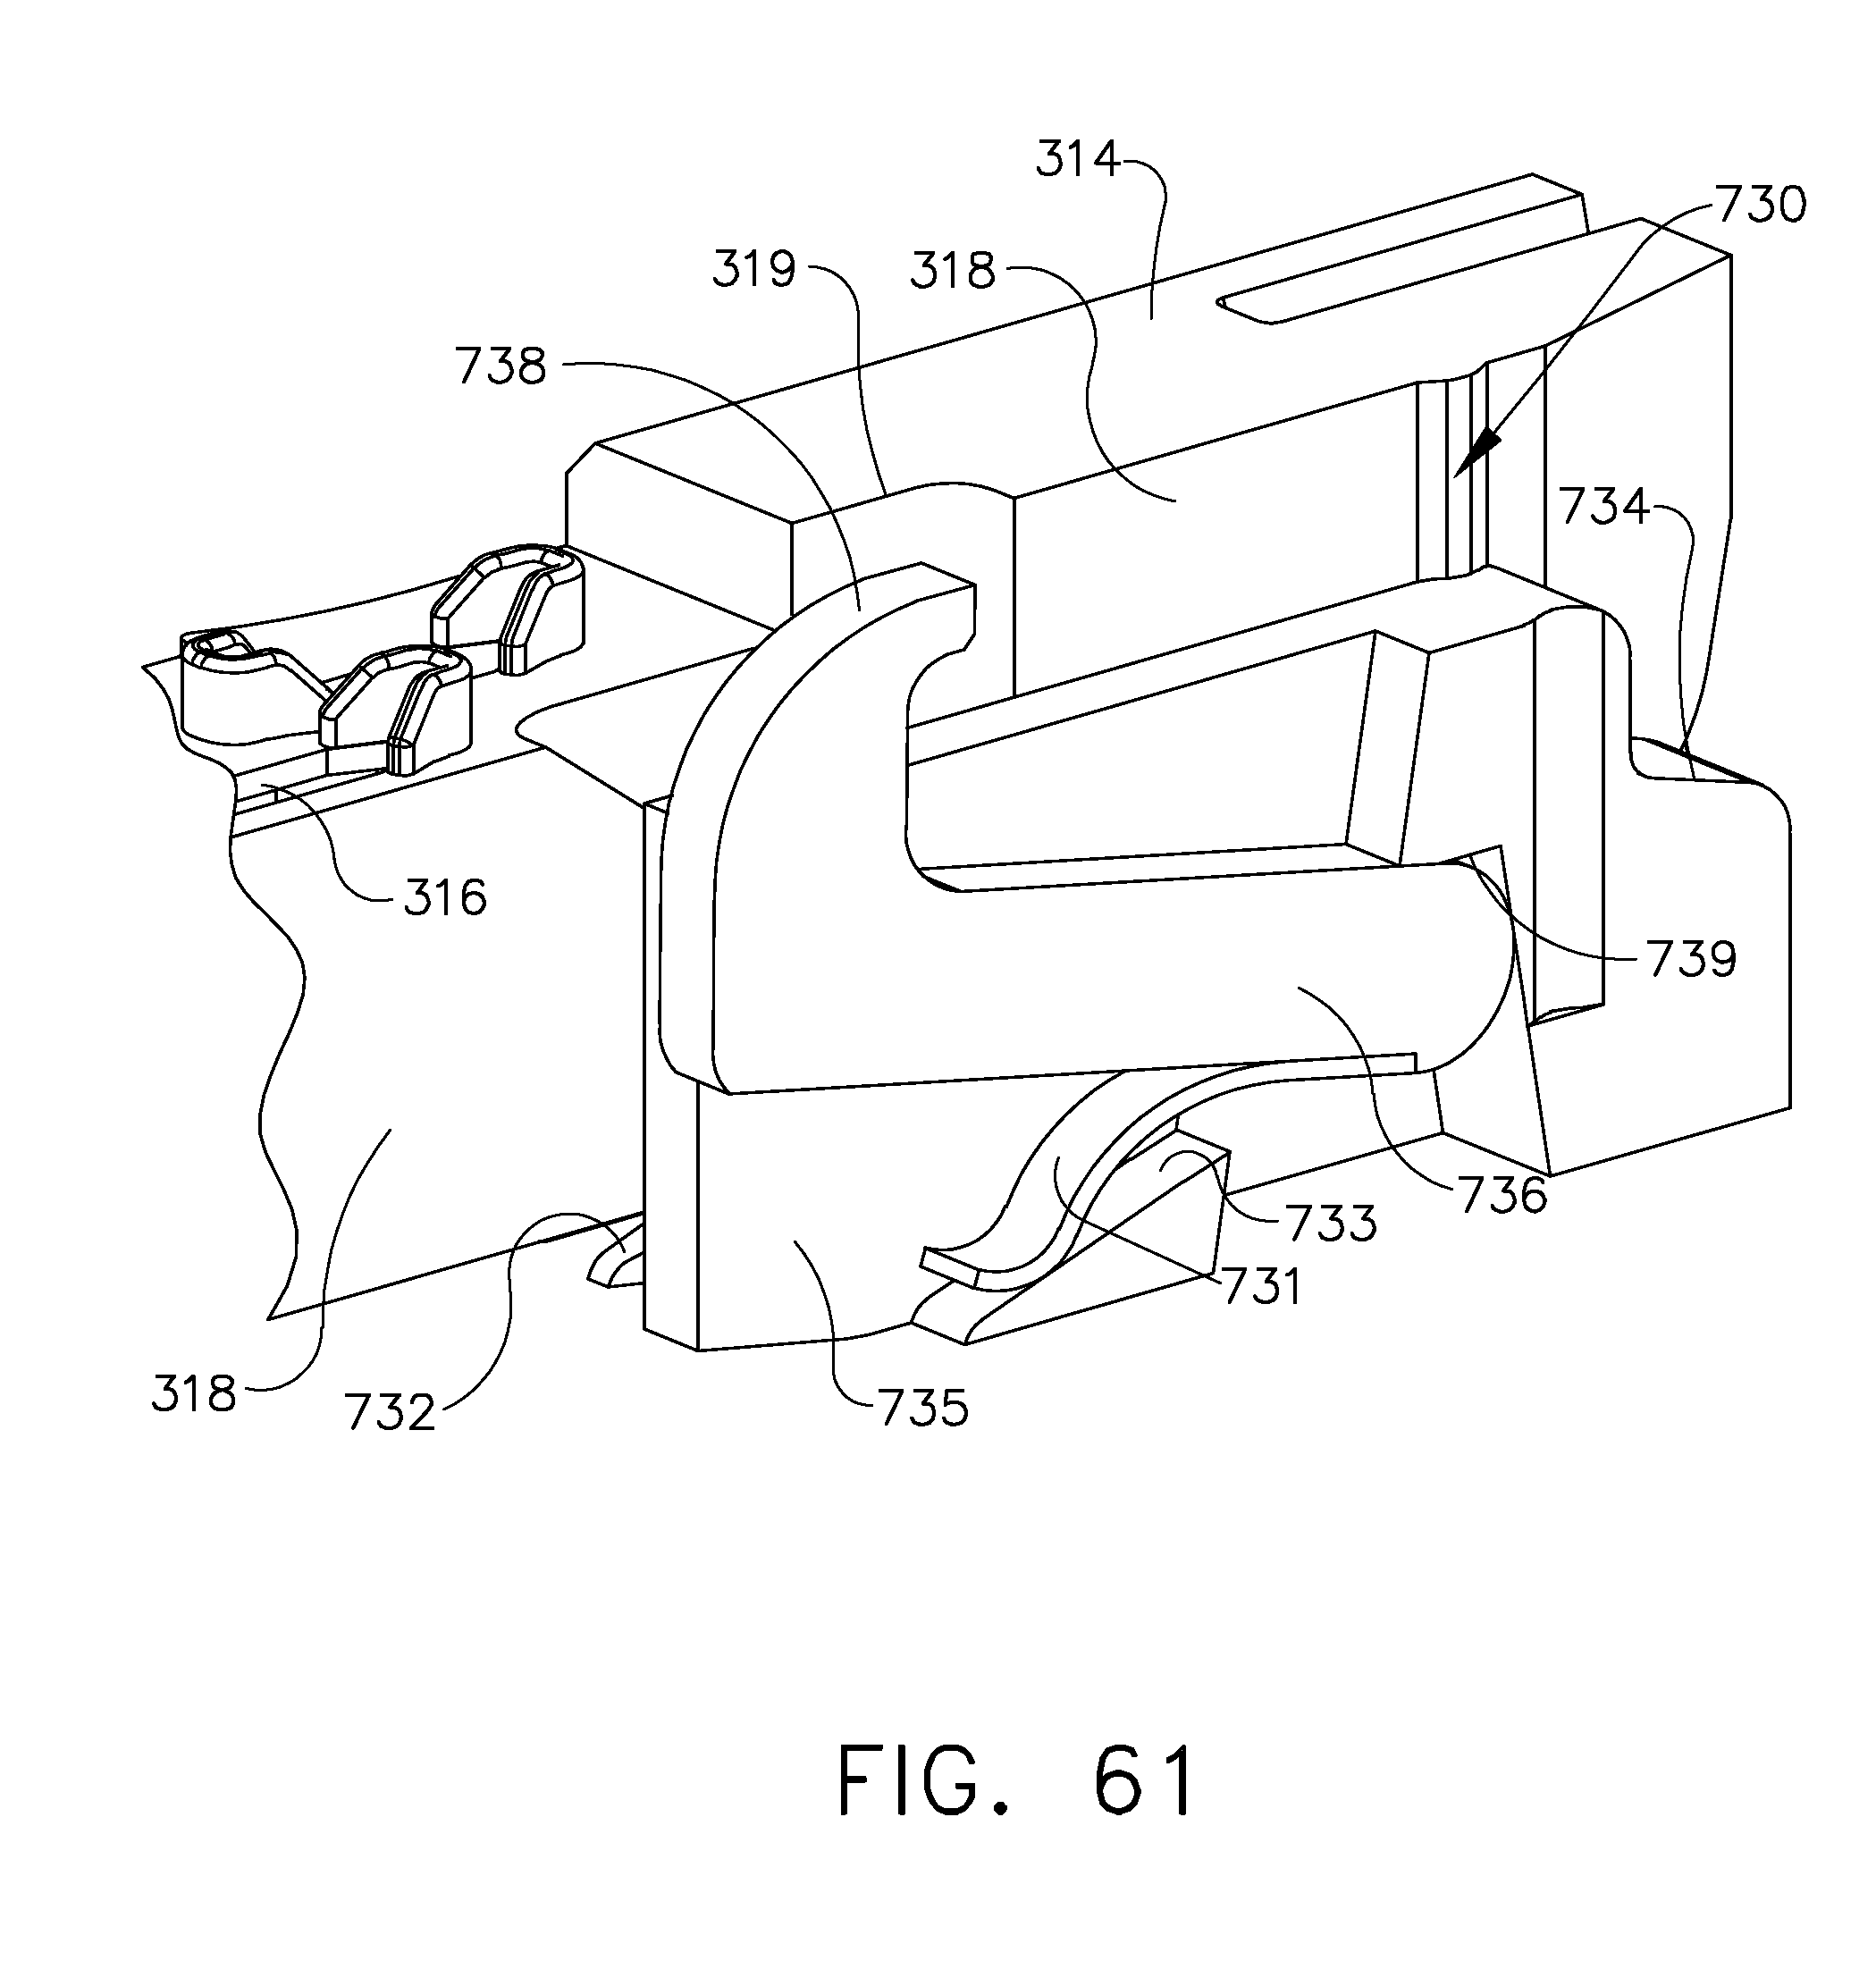 us9884456b2 implantable layers and methods for altering one or Aluminuim PVF Coated with Cladding us9884456b2 implantable layers and methods for altering one or more properties of implantable layers for use with fastening instruments patents